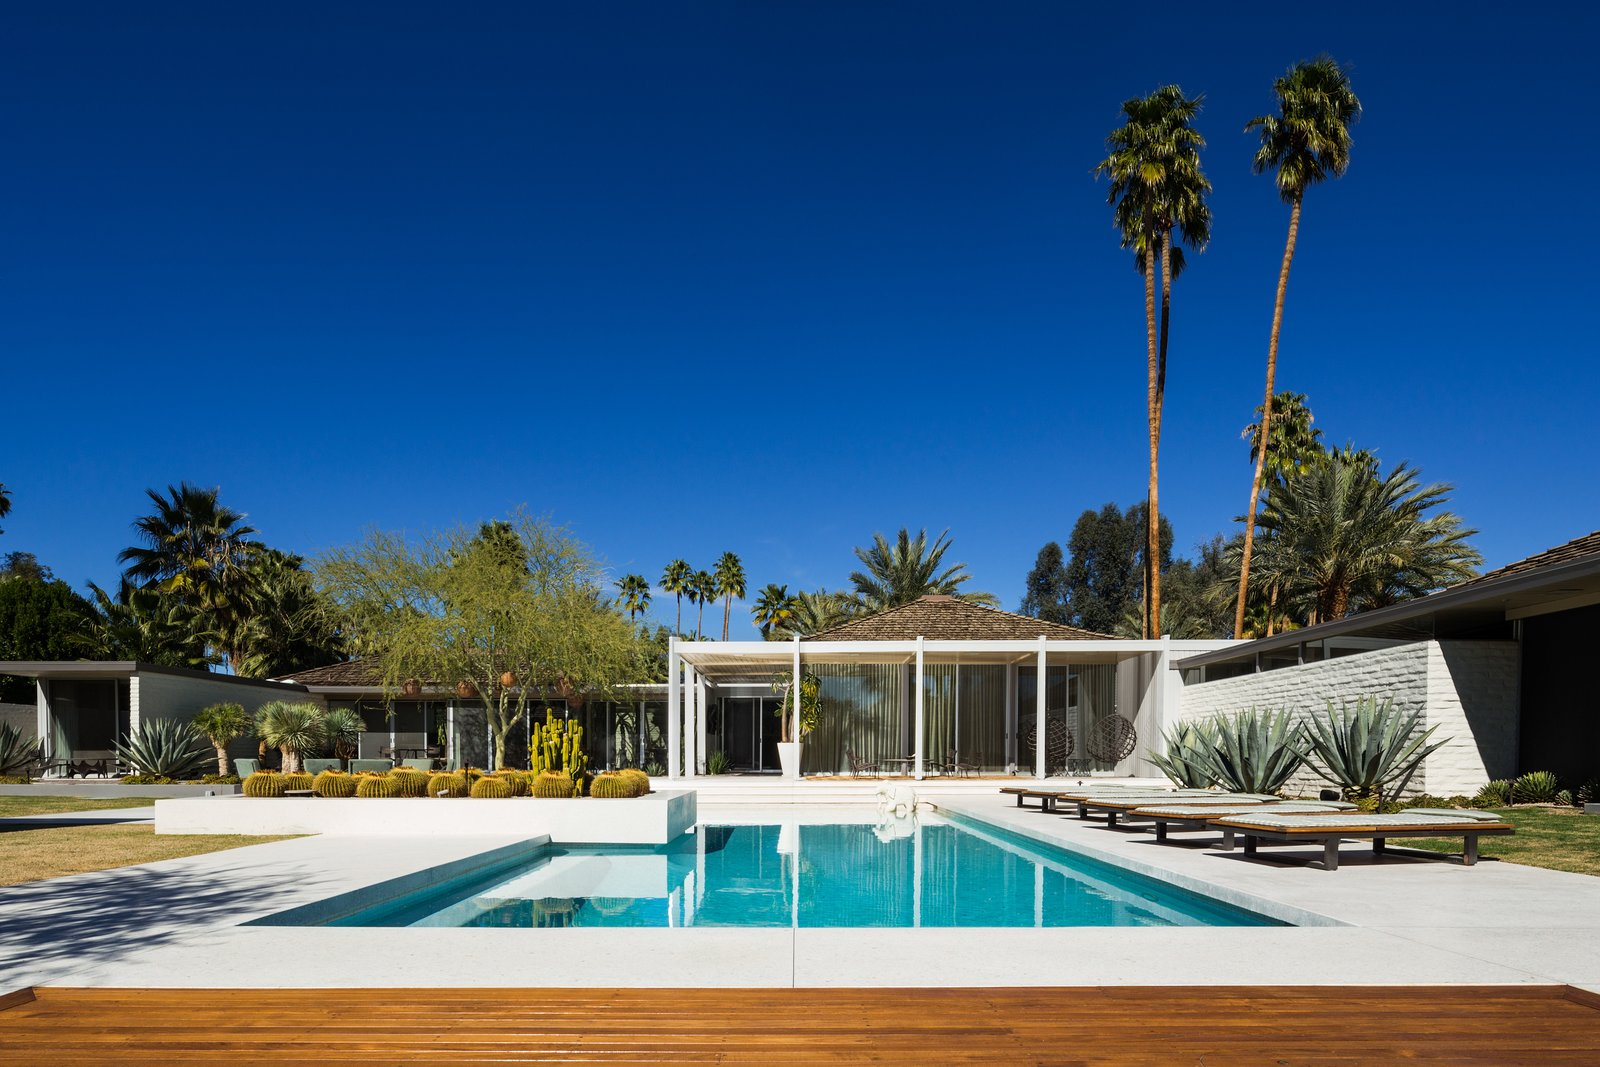 Outdoor, Trees, Back Yard, Gardens, Swimming, Hardscapes, Walkways, Concrete, Large, Raised Planters, and Wood Abernathy House   Best Outdoor Large Concrete Photos from 10 Things You Shouldn't Miss at Modernism Week in Palm Springs